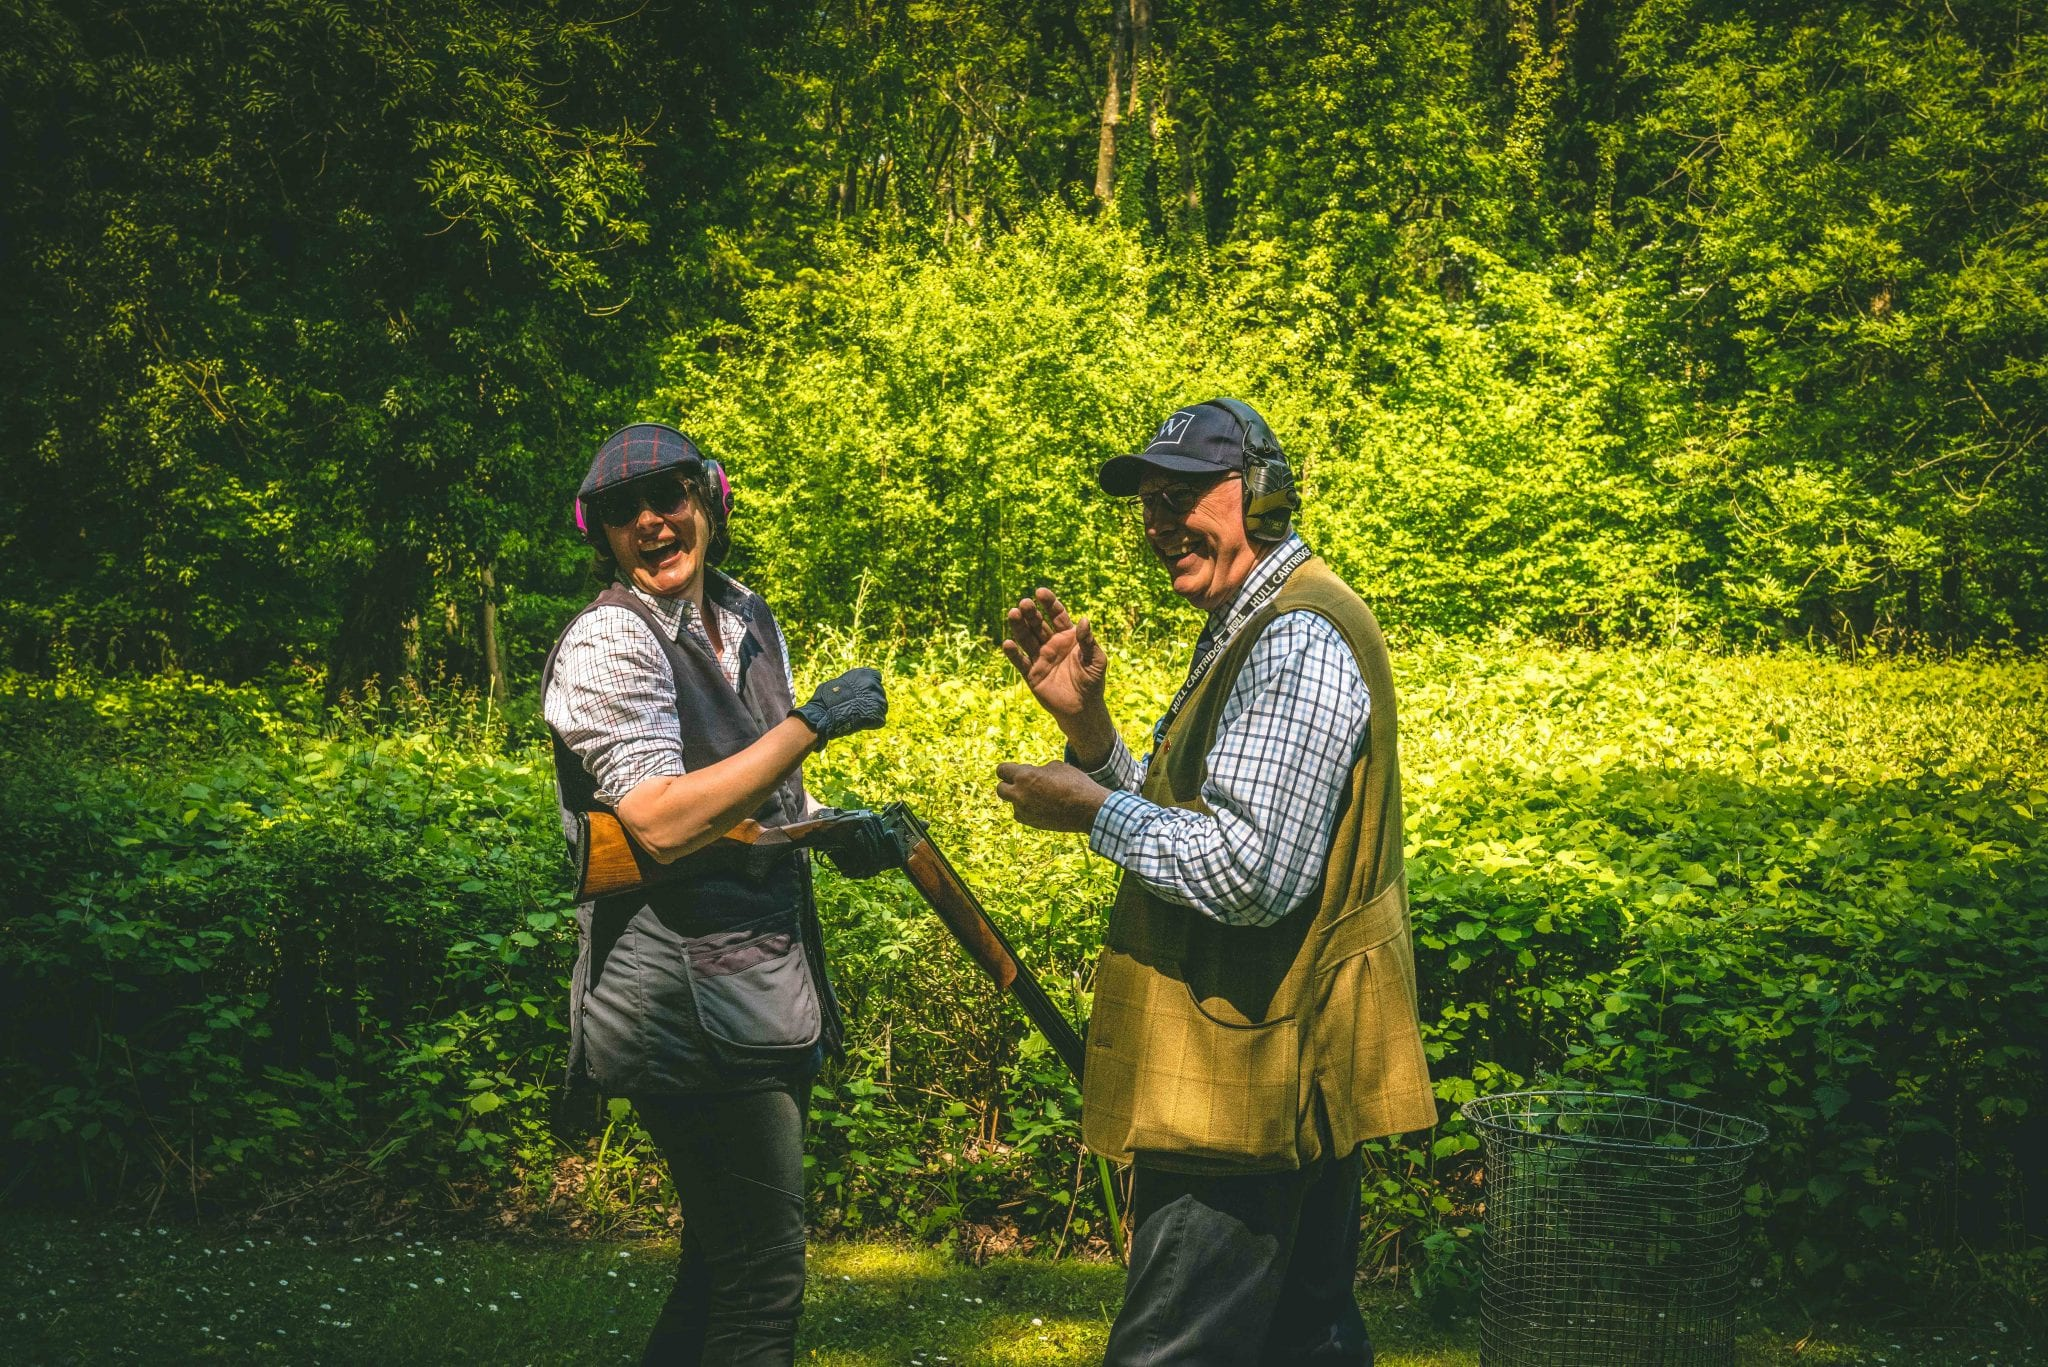 A shooting instructor and customer enjoy a clay shooting lesson